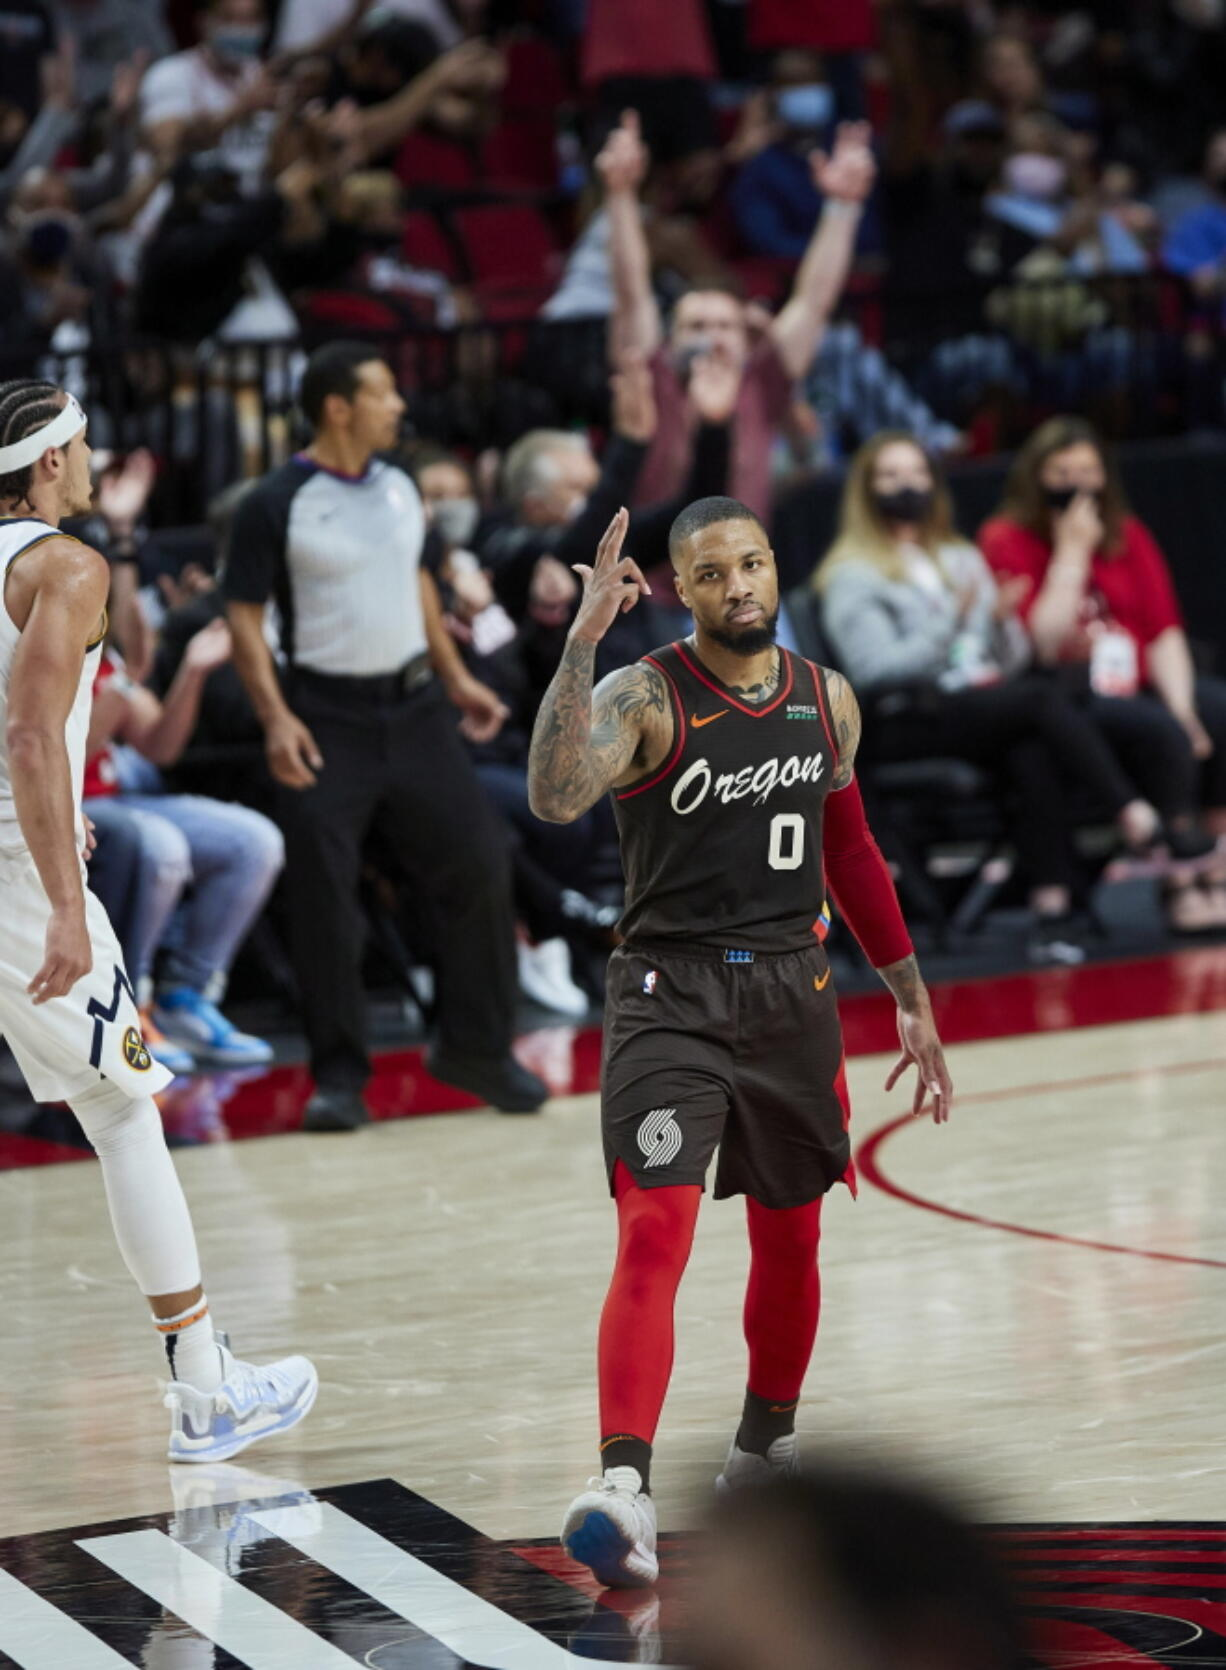 Portland Trail Blazers guard Damian Lillard reacts after making a 3-point basket against the Denver Nuggets during the first half of Game 6 of an NBA basketball first-round playoff series Thursday, June 3, 2021, in Portland, Ore.